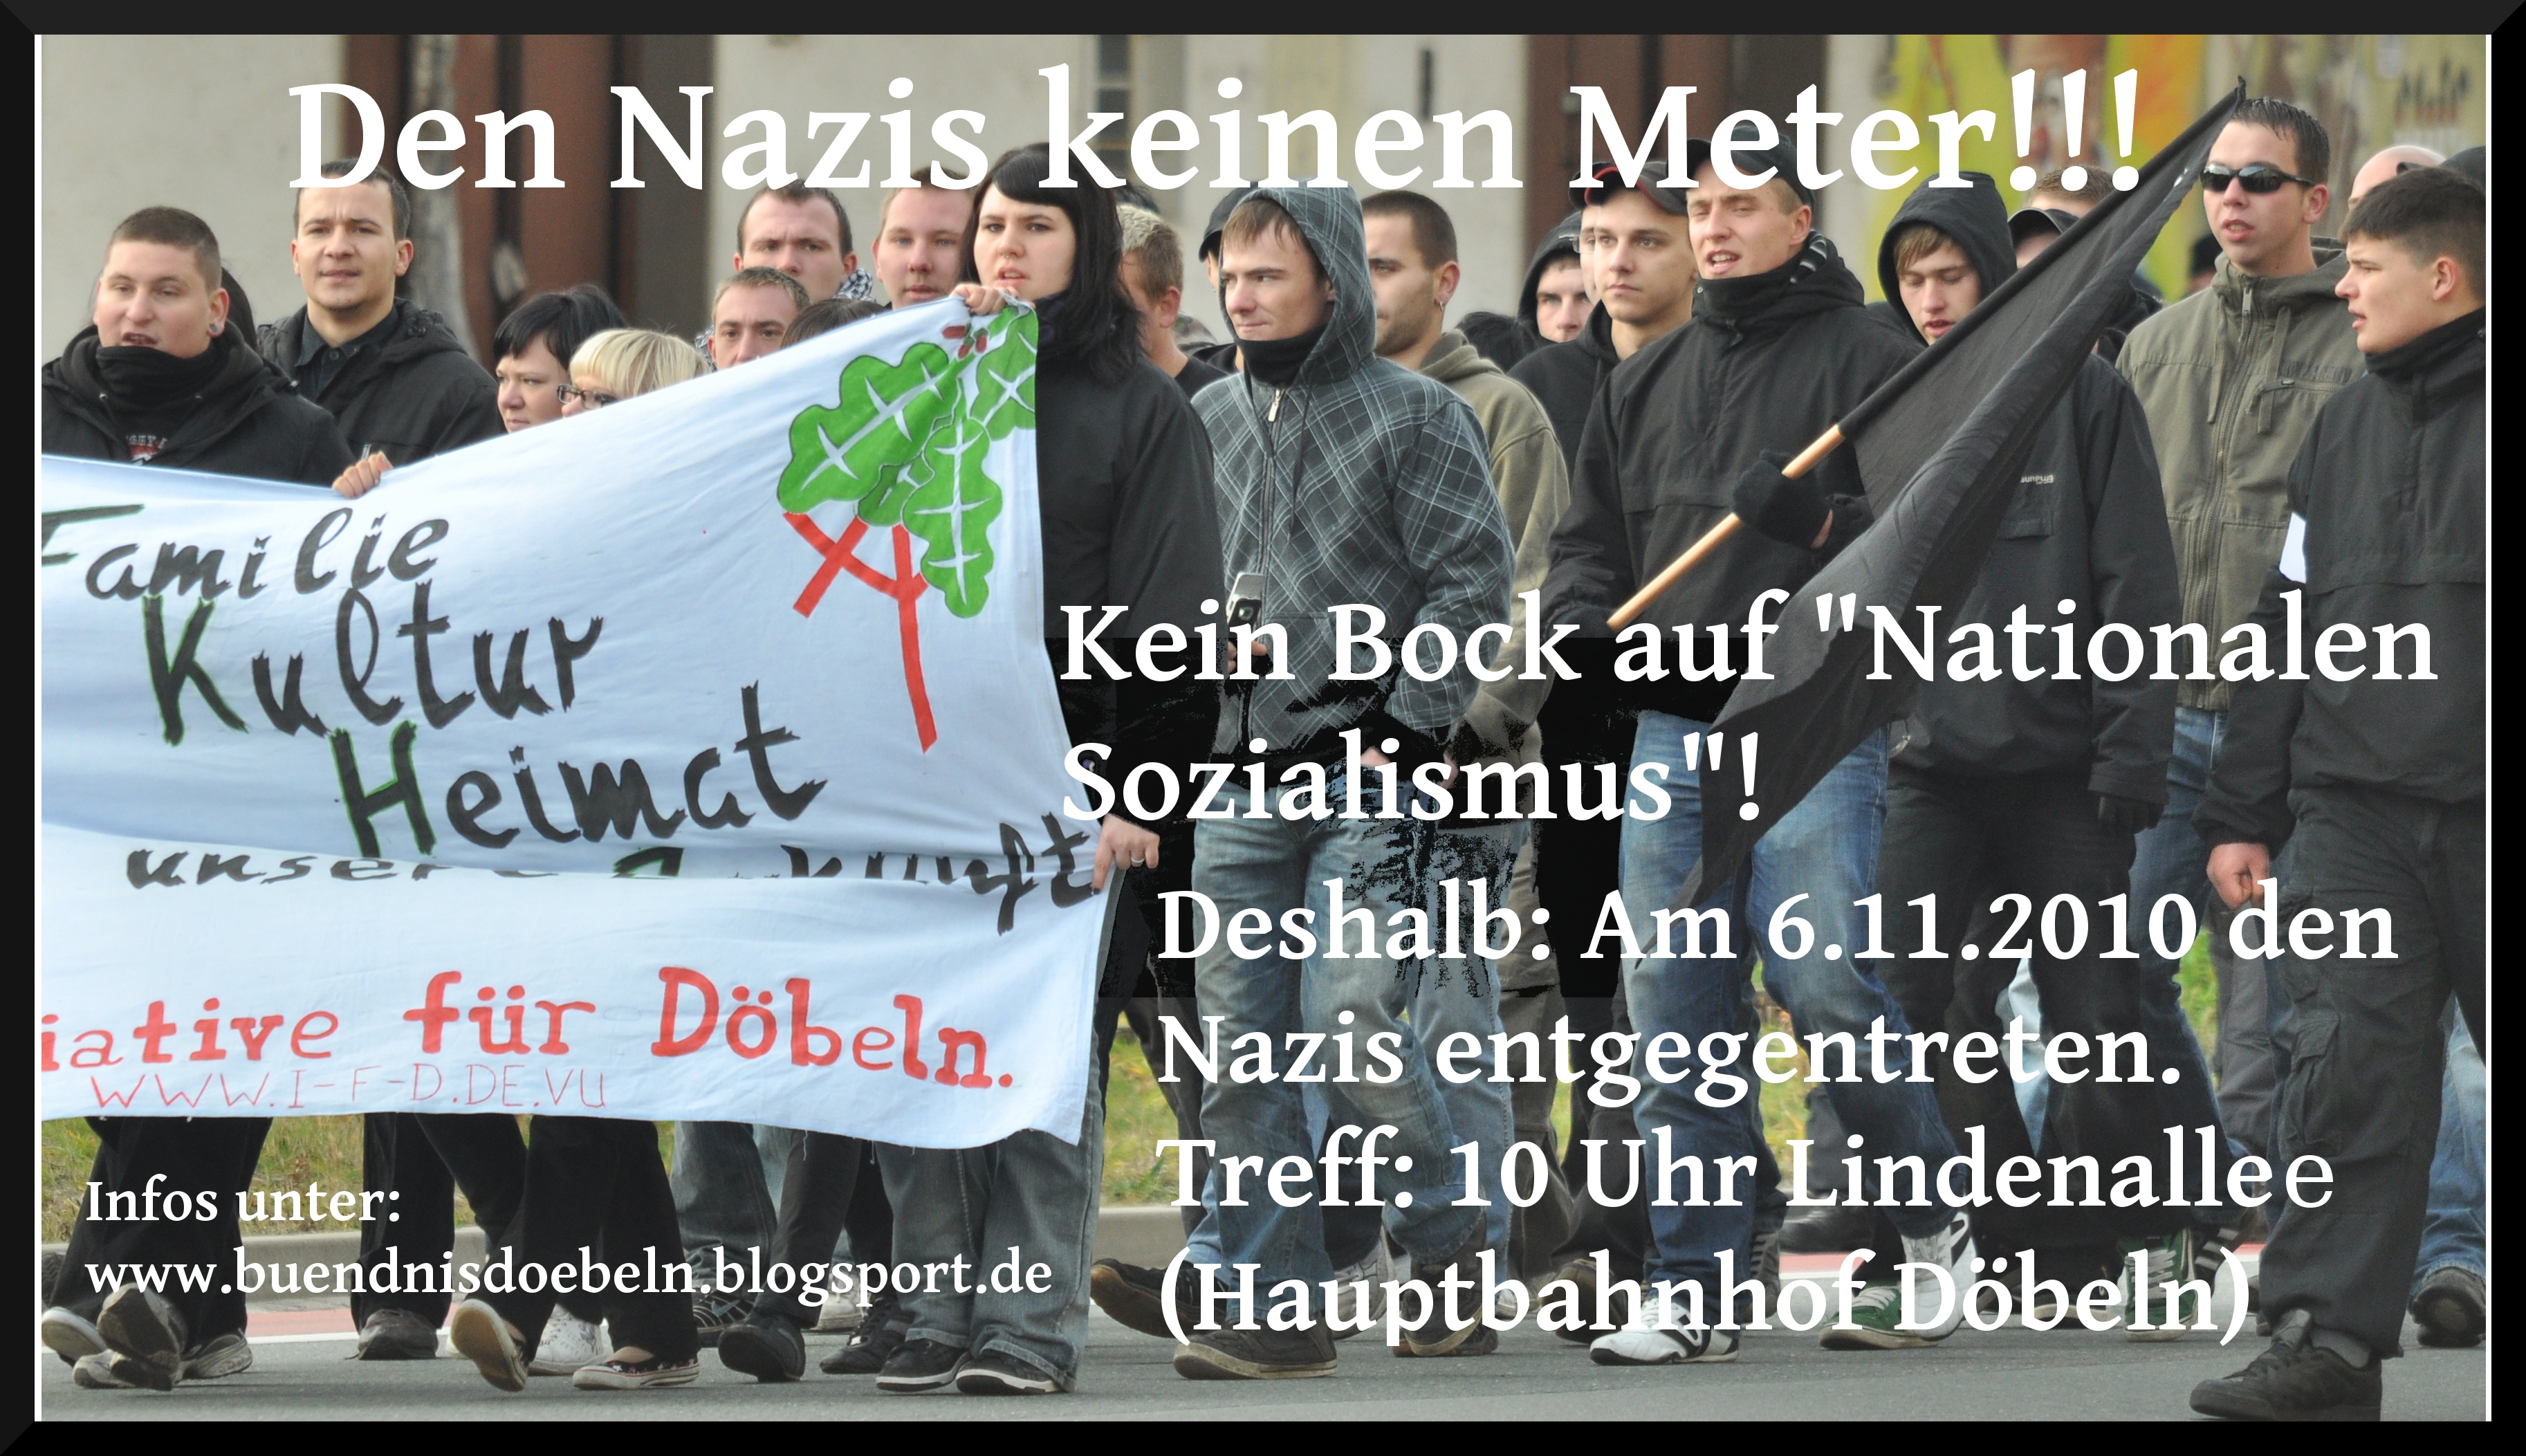 http://buendnisdoebeln.blogsport.de/images/flyer.doebeln_02.jpeg